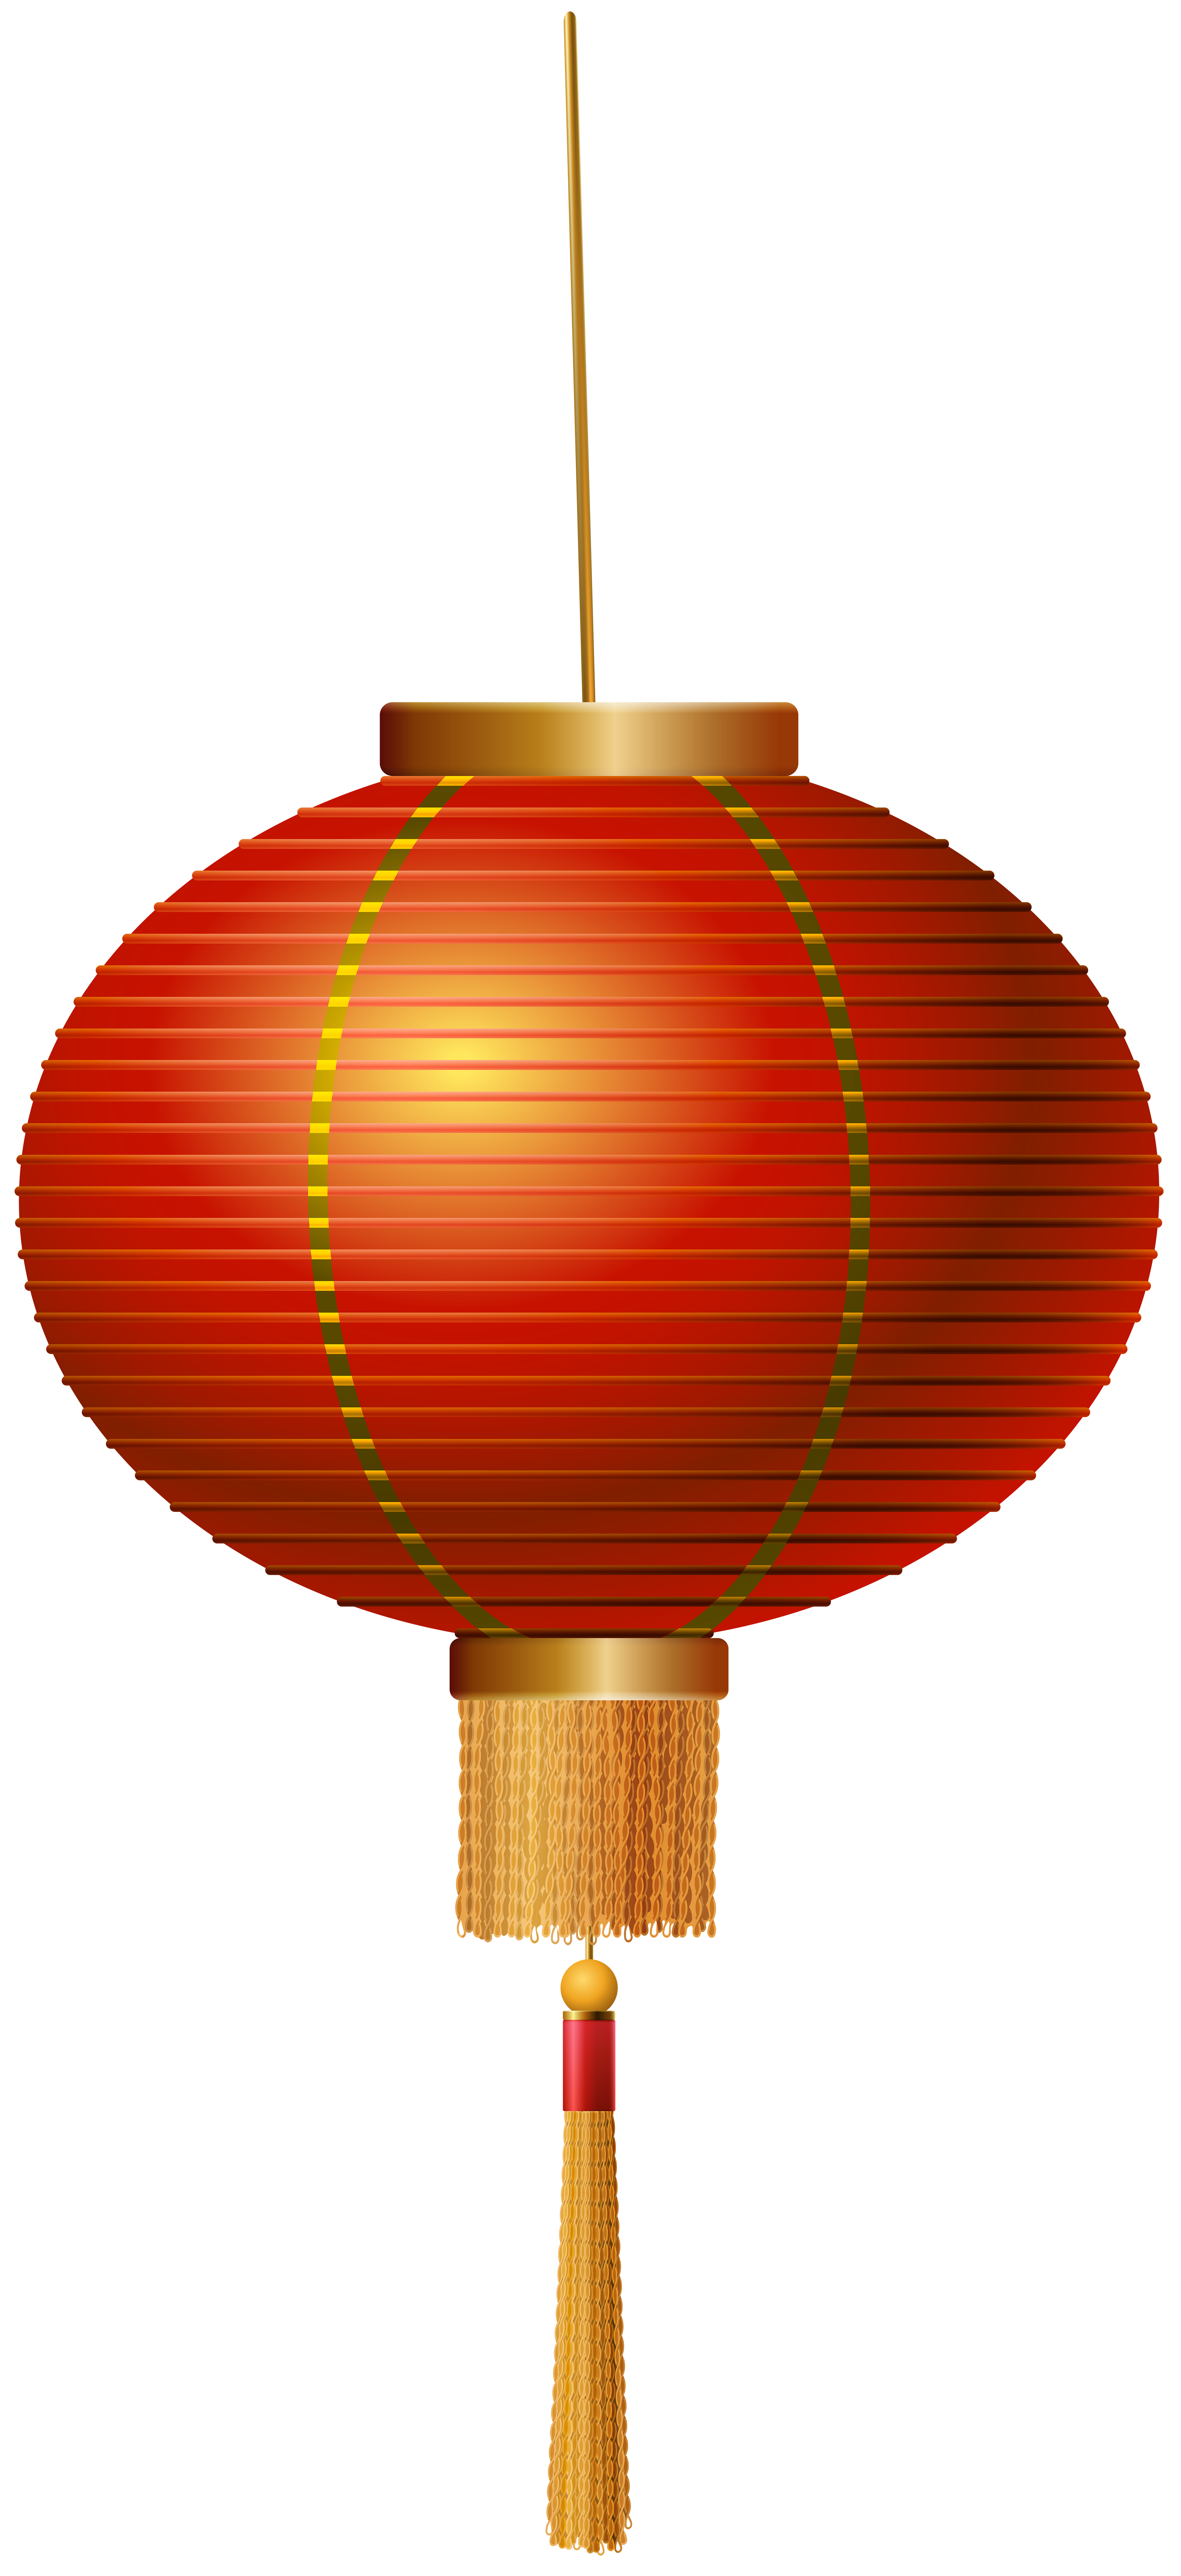 Vintage red lantern clipart png stock Lamps Clipart | Free download best Lamps Clipart on ... png stock